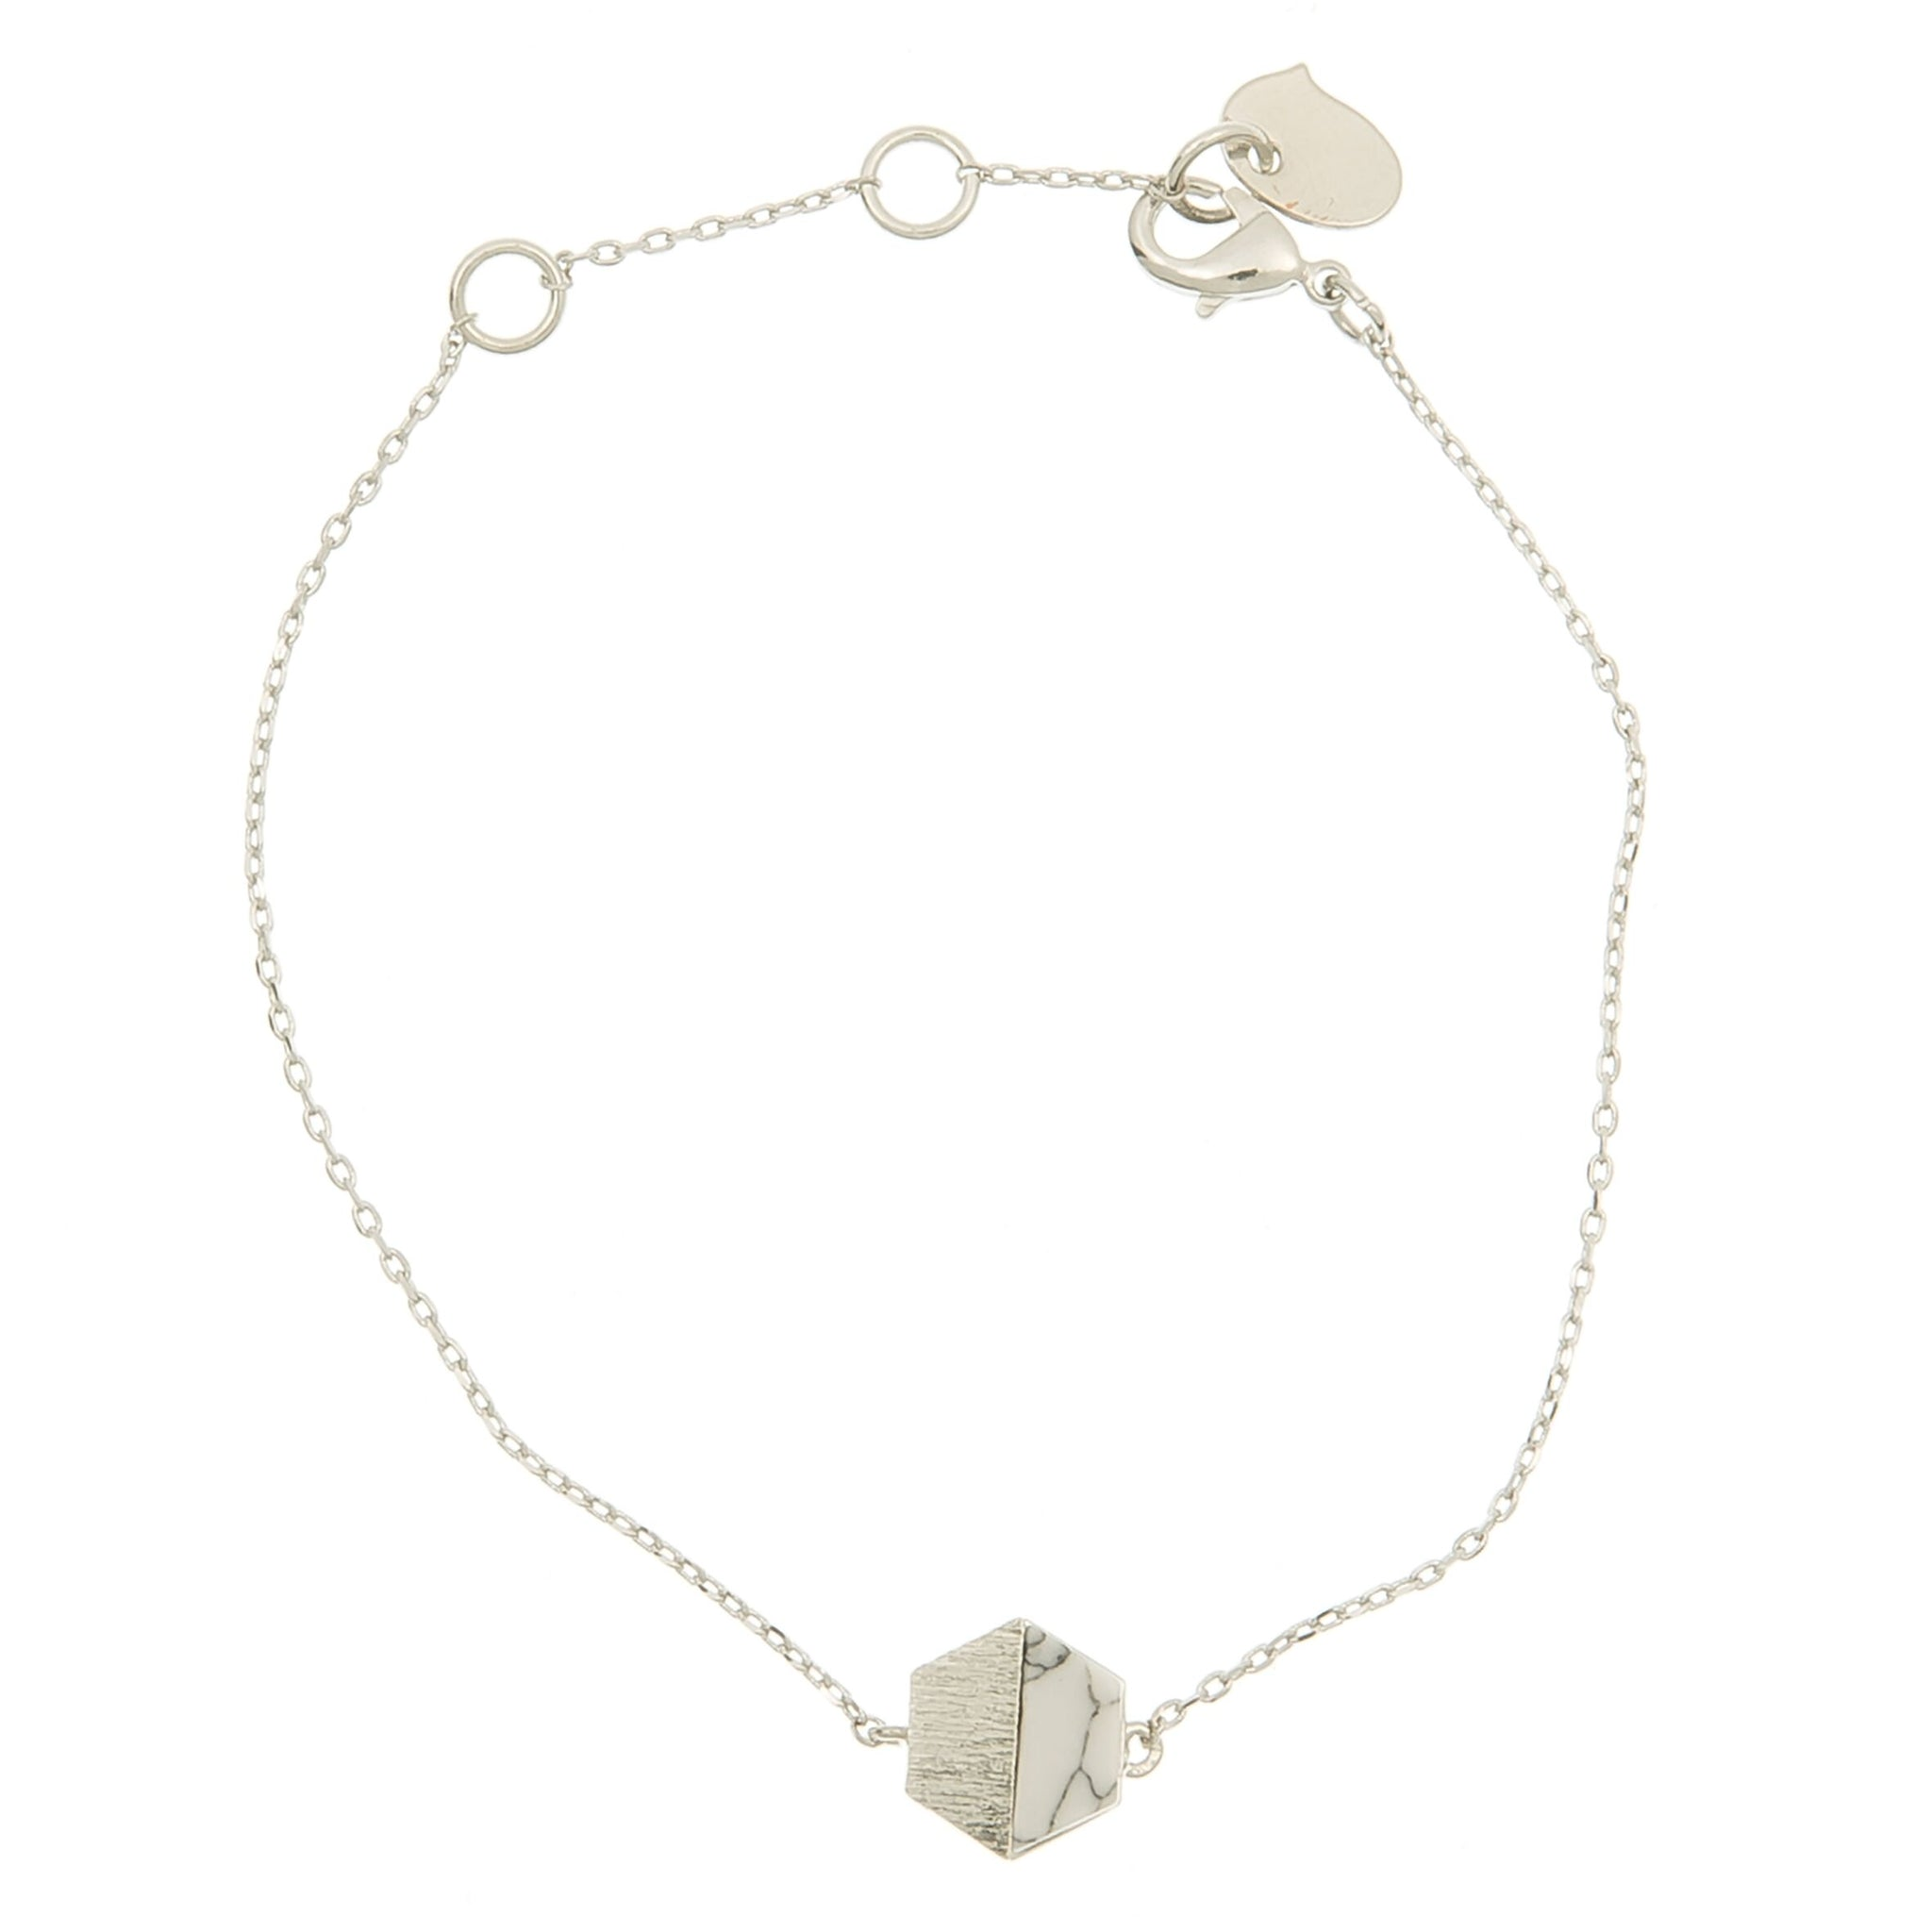 HEXAGON WITH STONE SETTING BRACELET IN SILVER